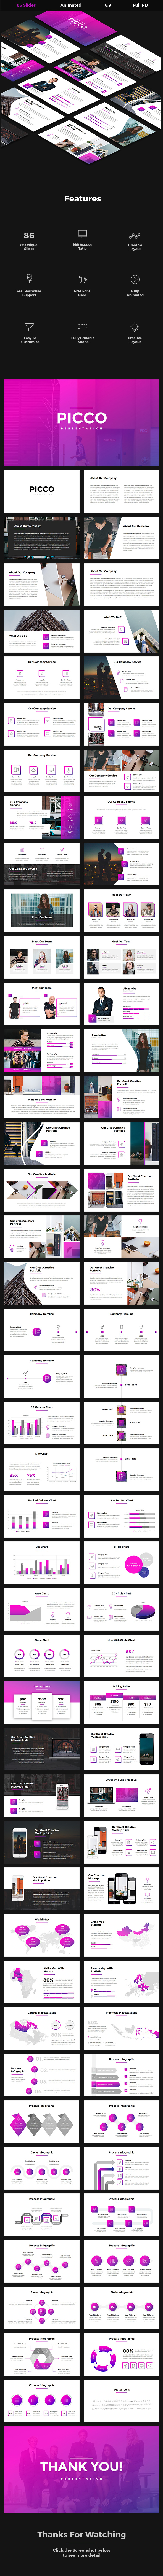 Picco - Creative Powerpoint Template - Creative PowerPoint Templates